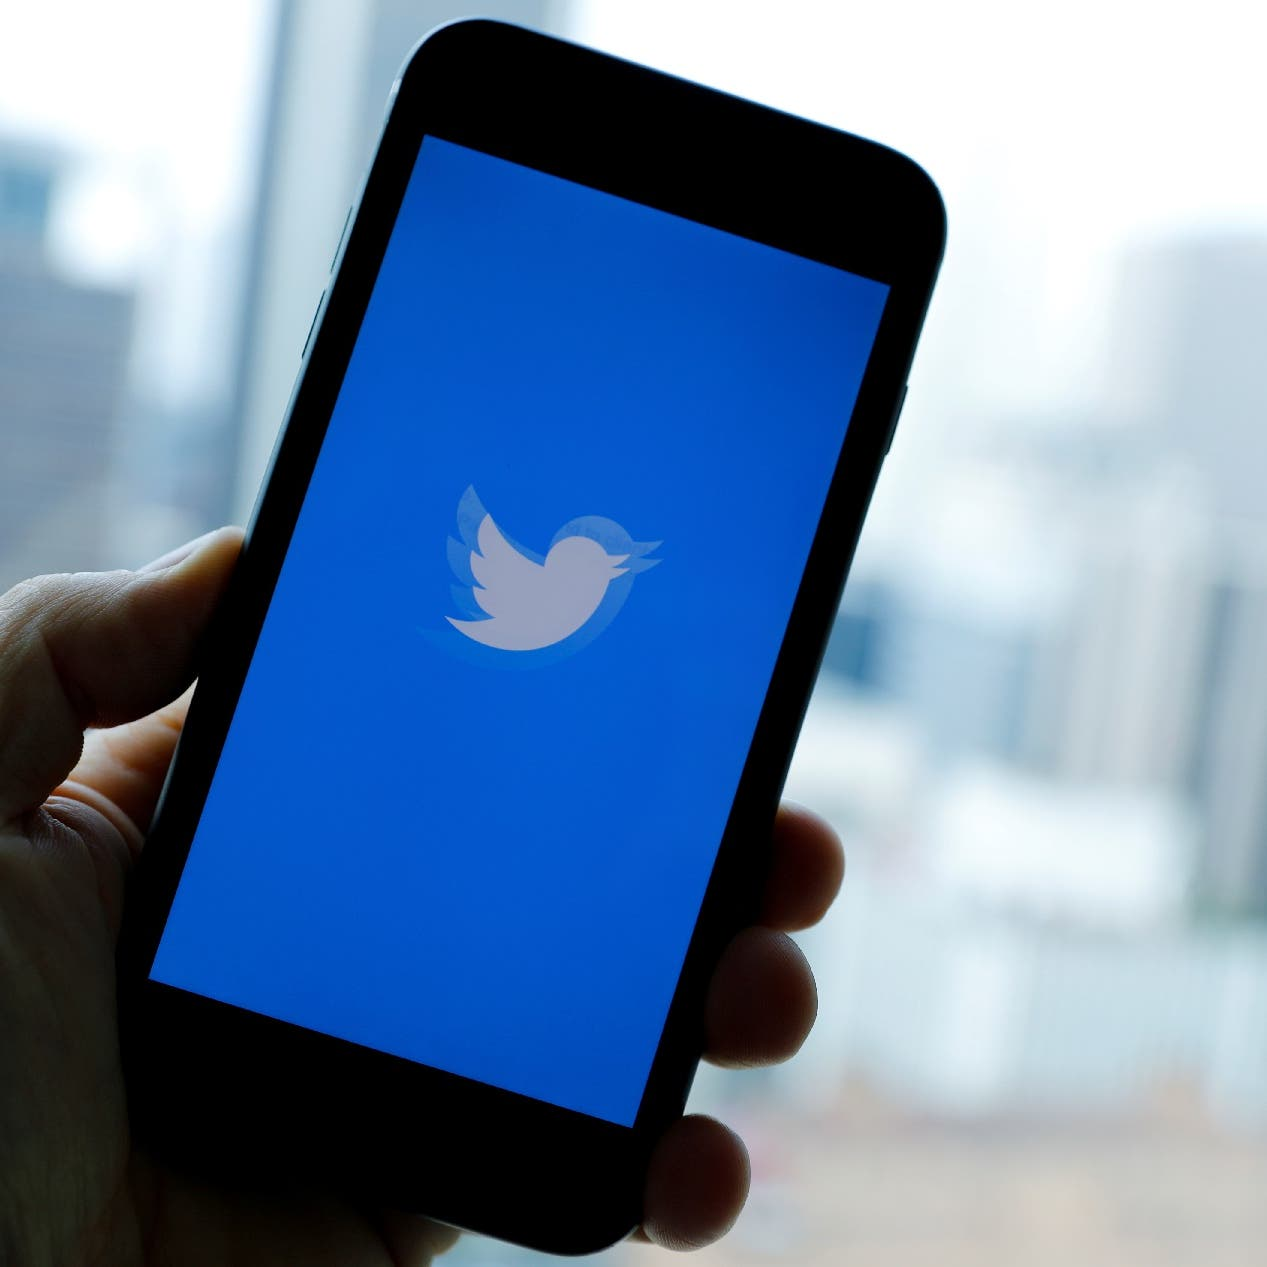 Russian court fines Twitter for failing to delete content considered illegal by Mosco